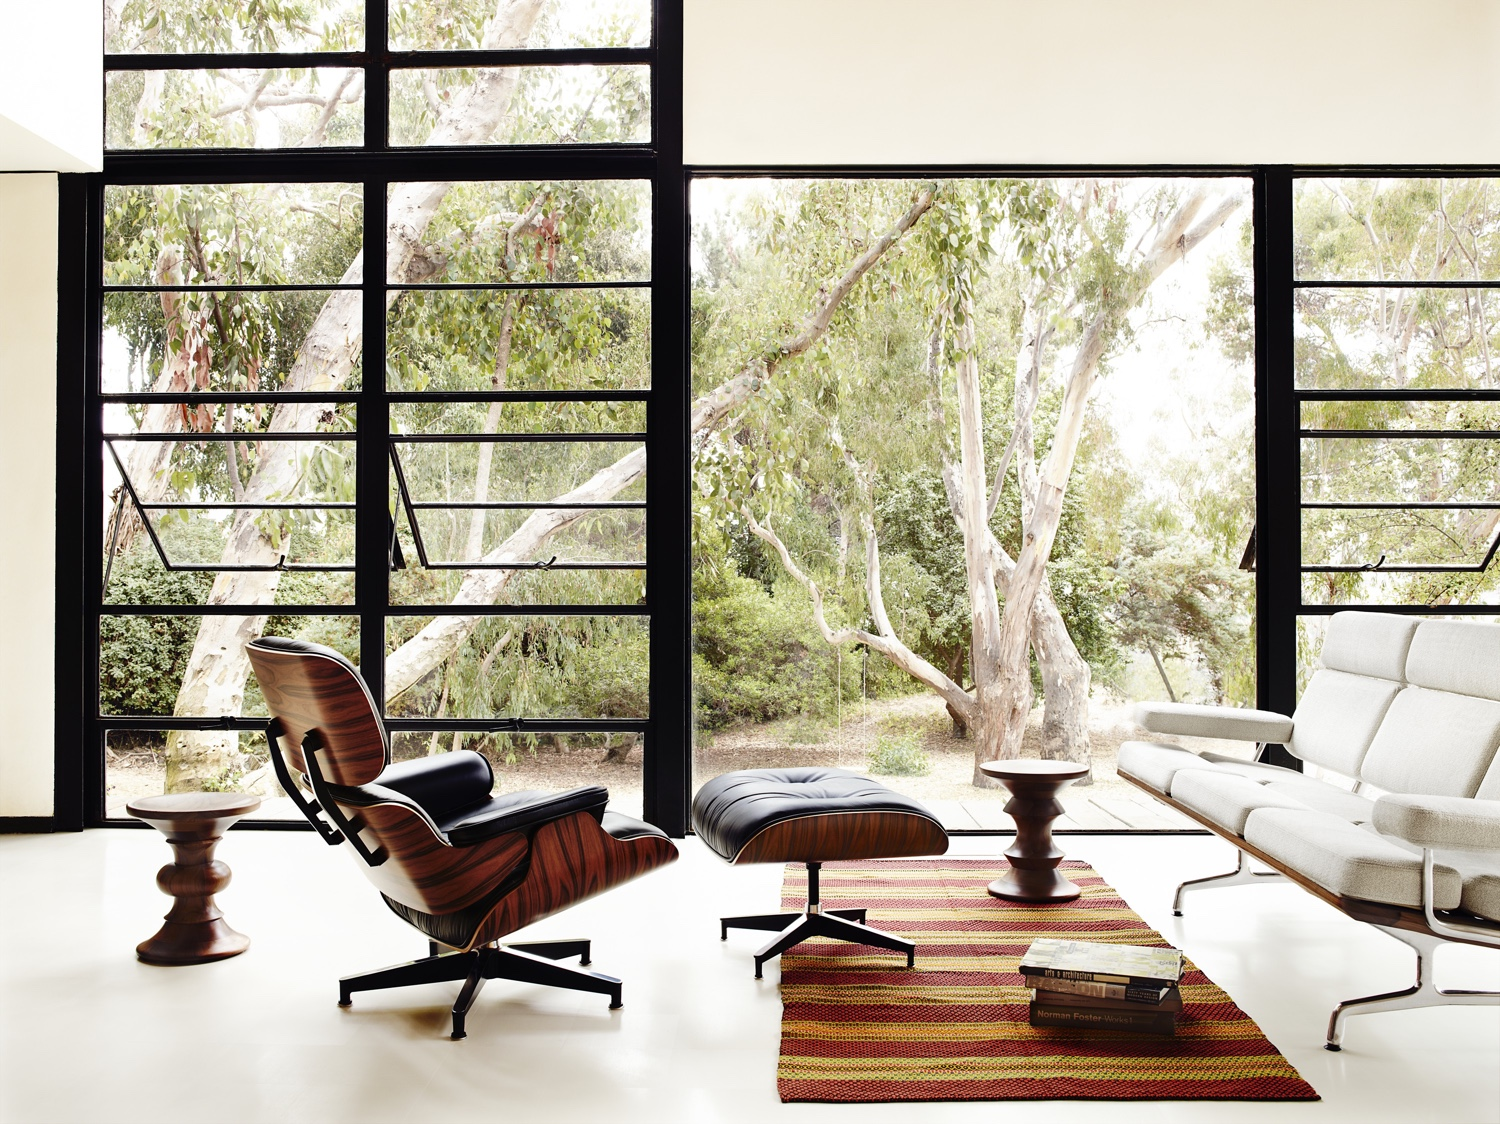 Eames house with eames furniture design ideas the classic design stories of the eames lounge chair and ottoman